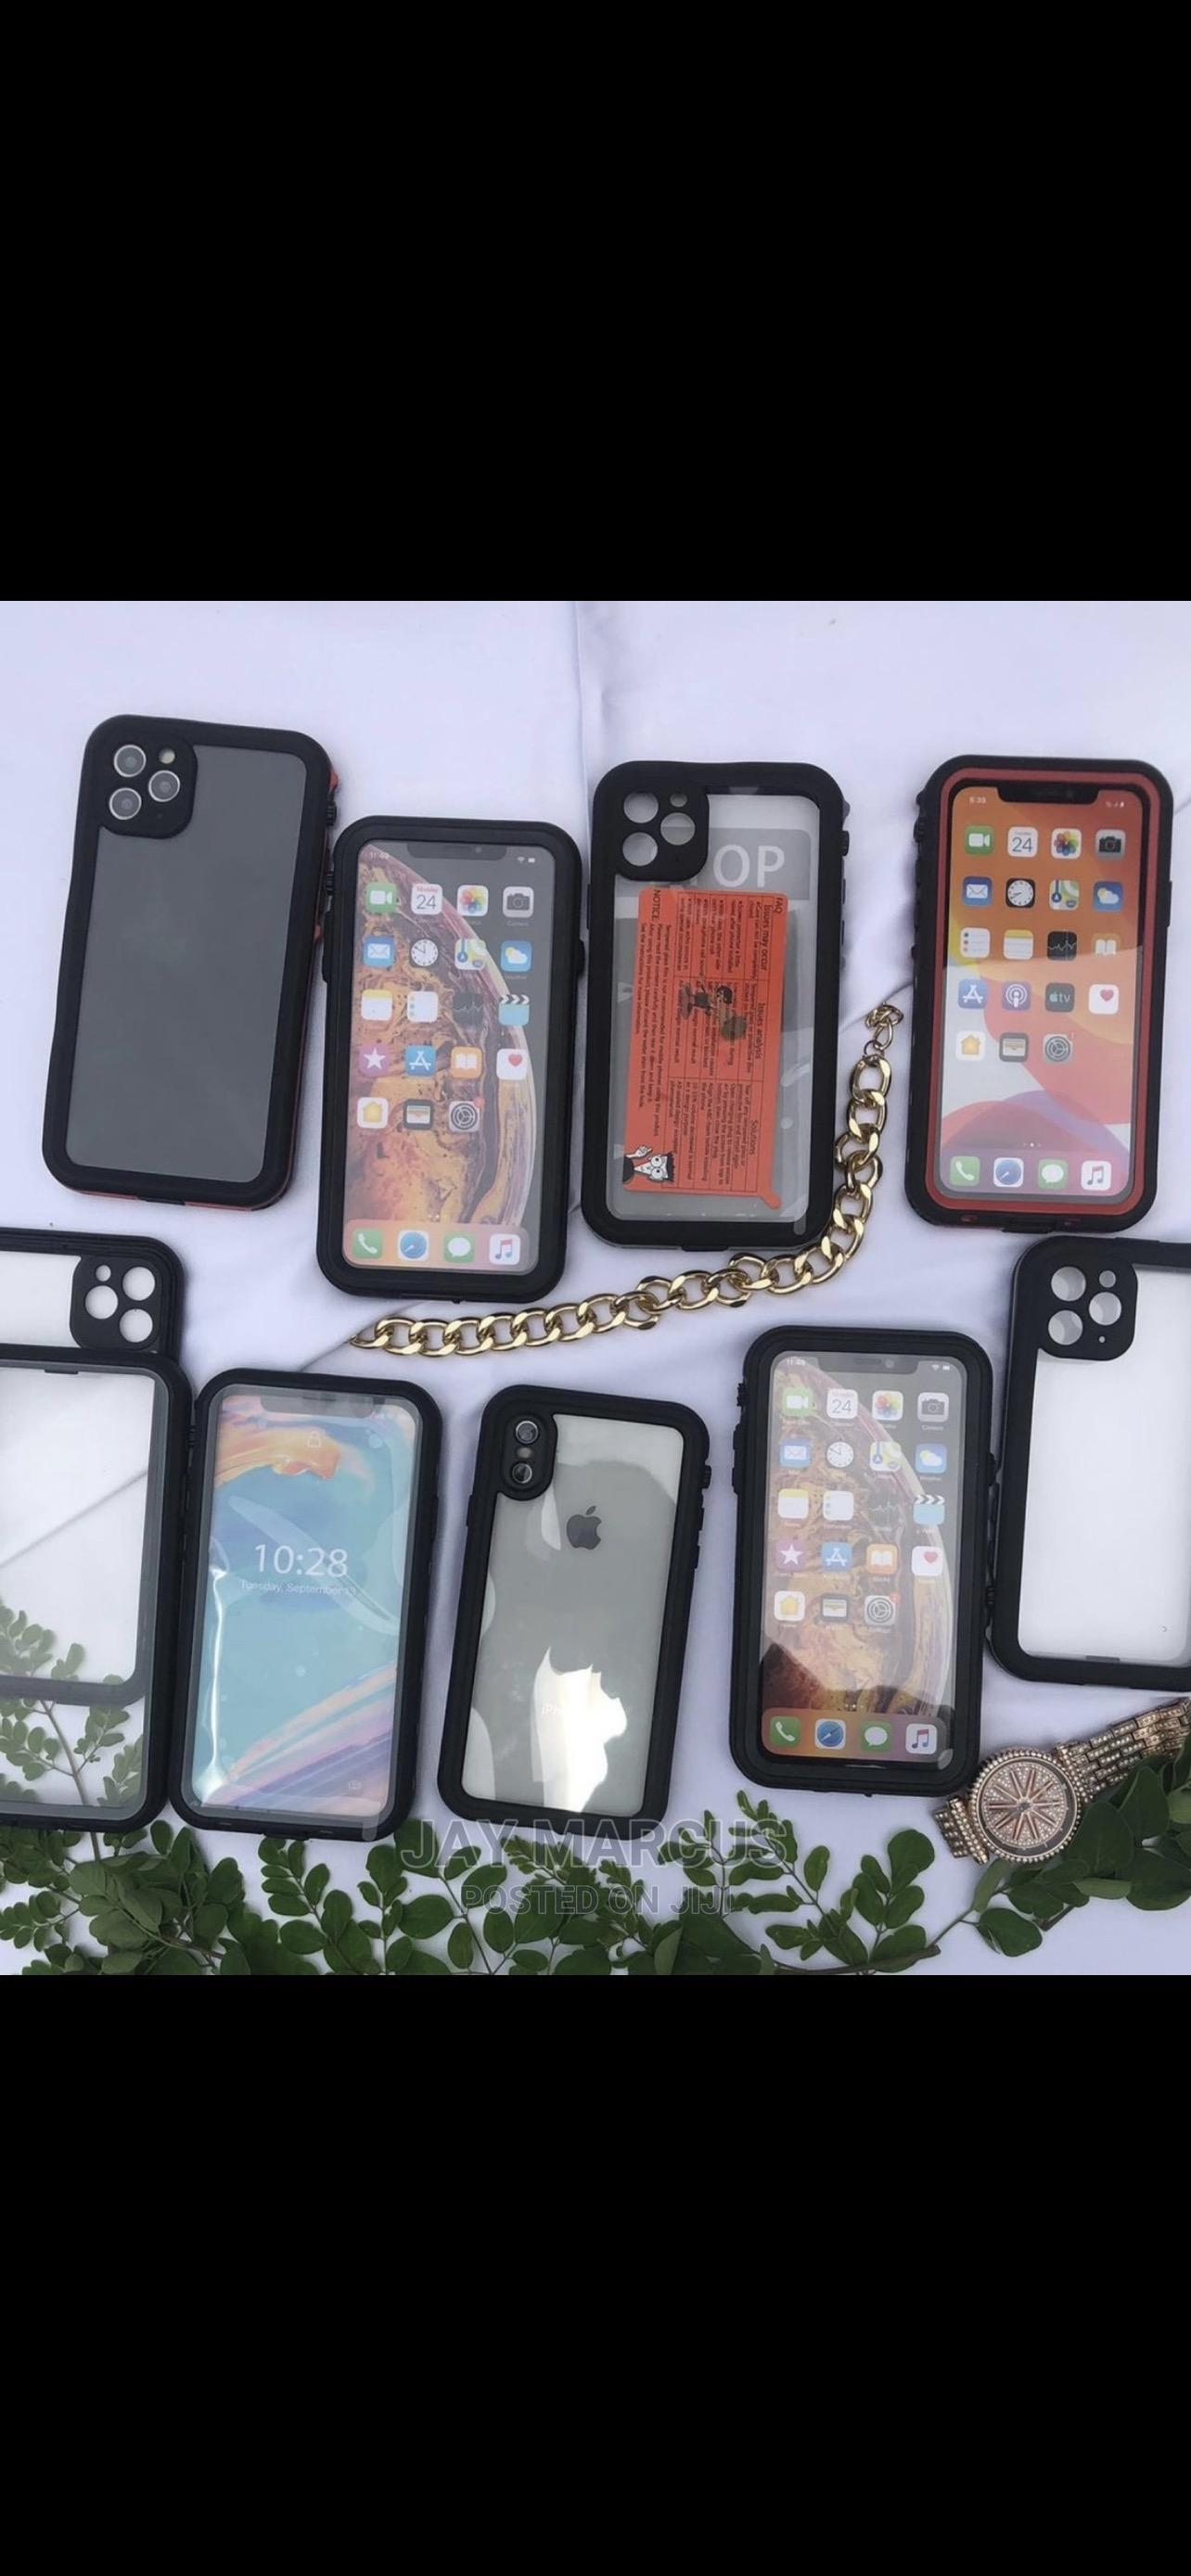 iPhone Water and Dust Resistant Case